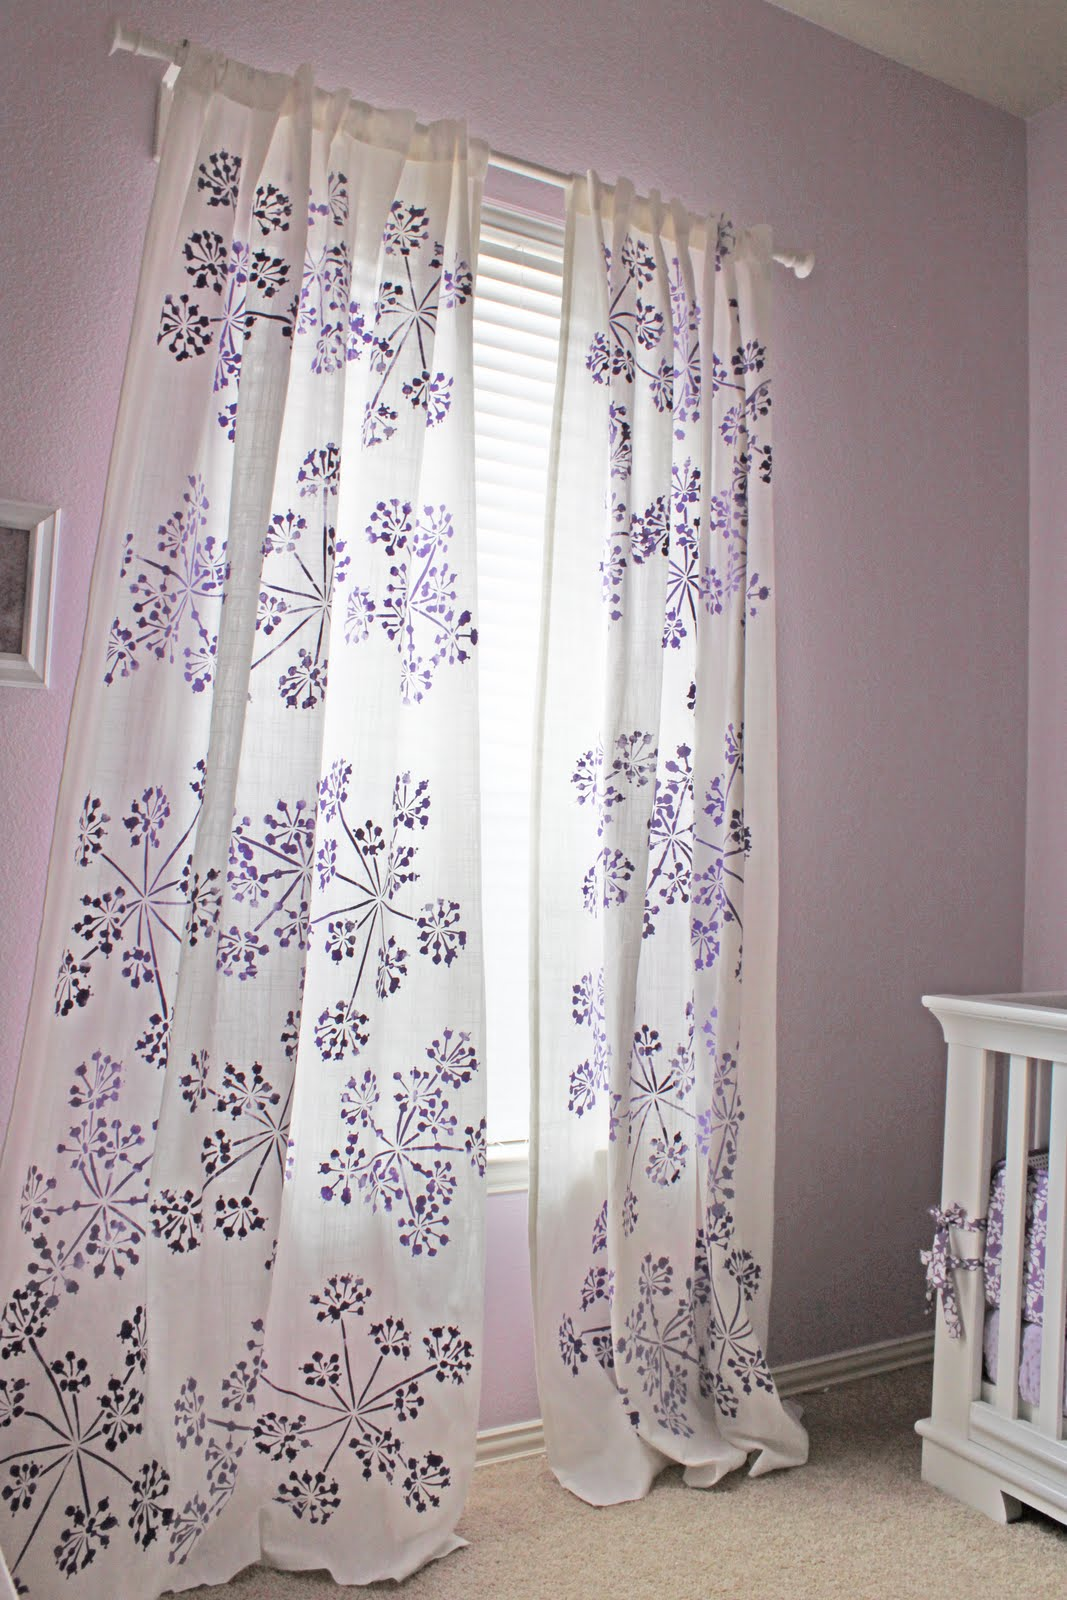 Stenciled-Curtains3 37+ Creative Curtains Design Ideas To DIY